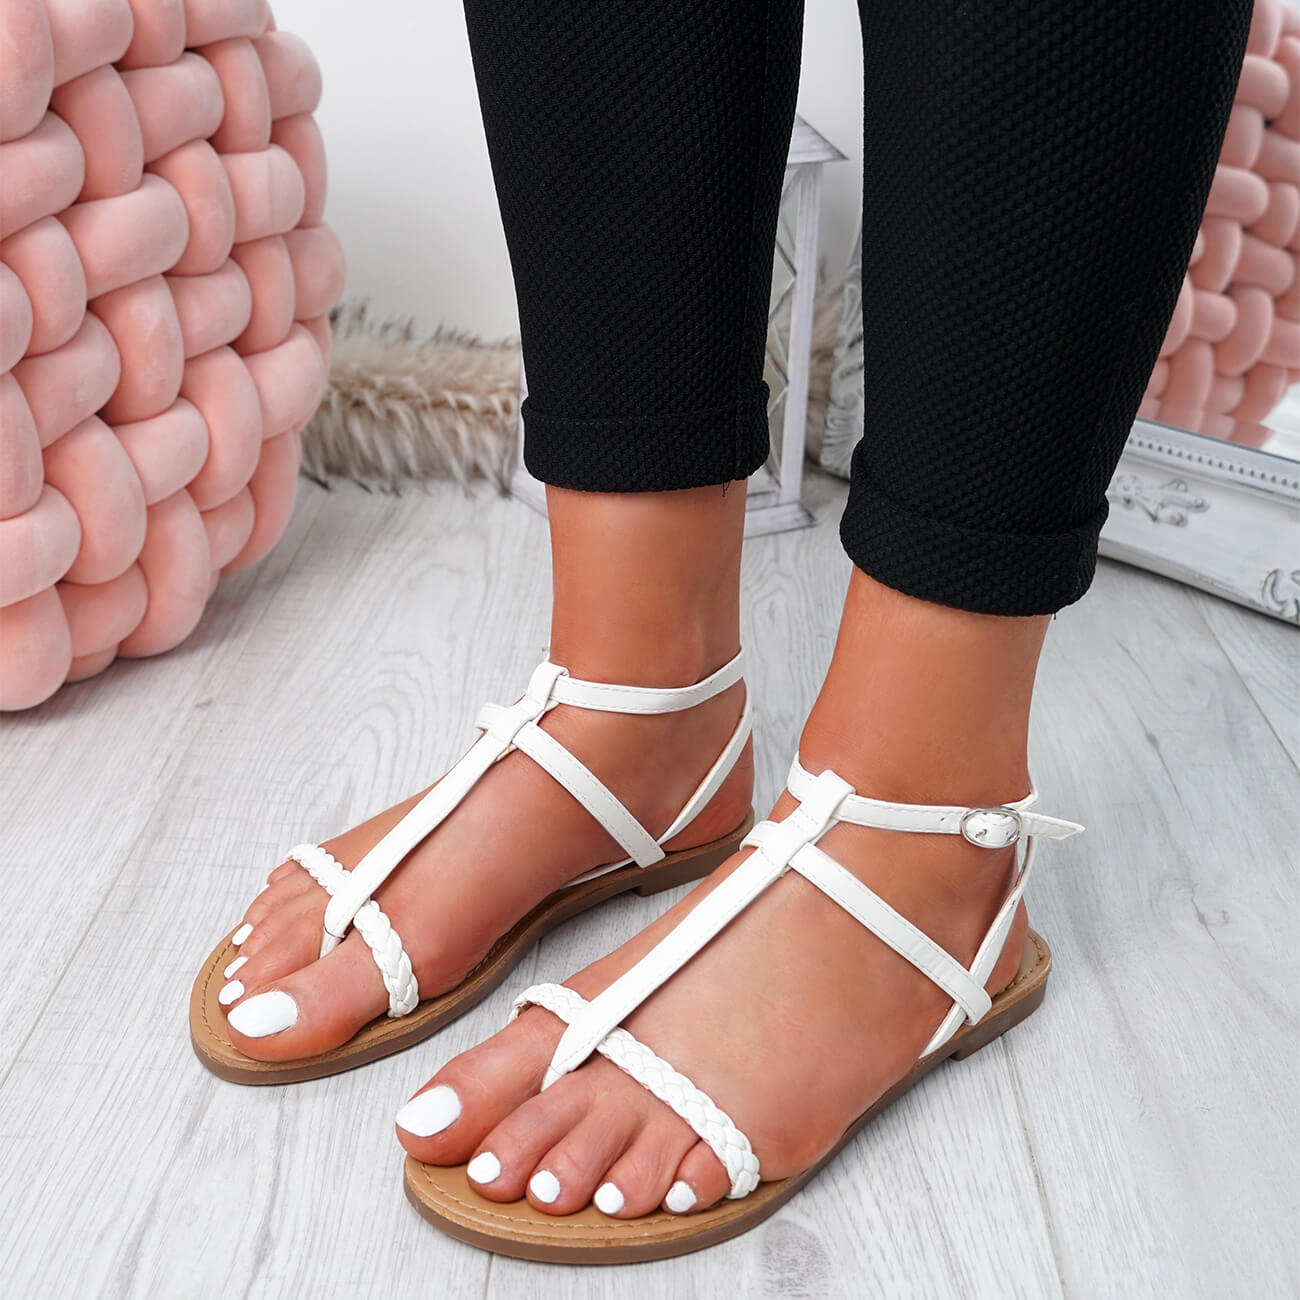 WOMENS-LADIES-T-STRAP-FLAT-SANDALS-BUCKLE-CASUAL-SUMMER-SHOES-SIZE-UK thumbnail 32